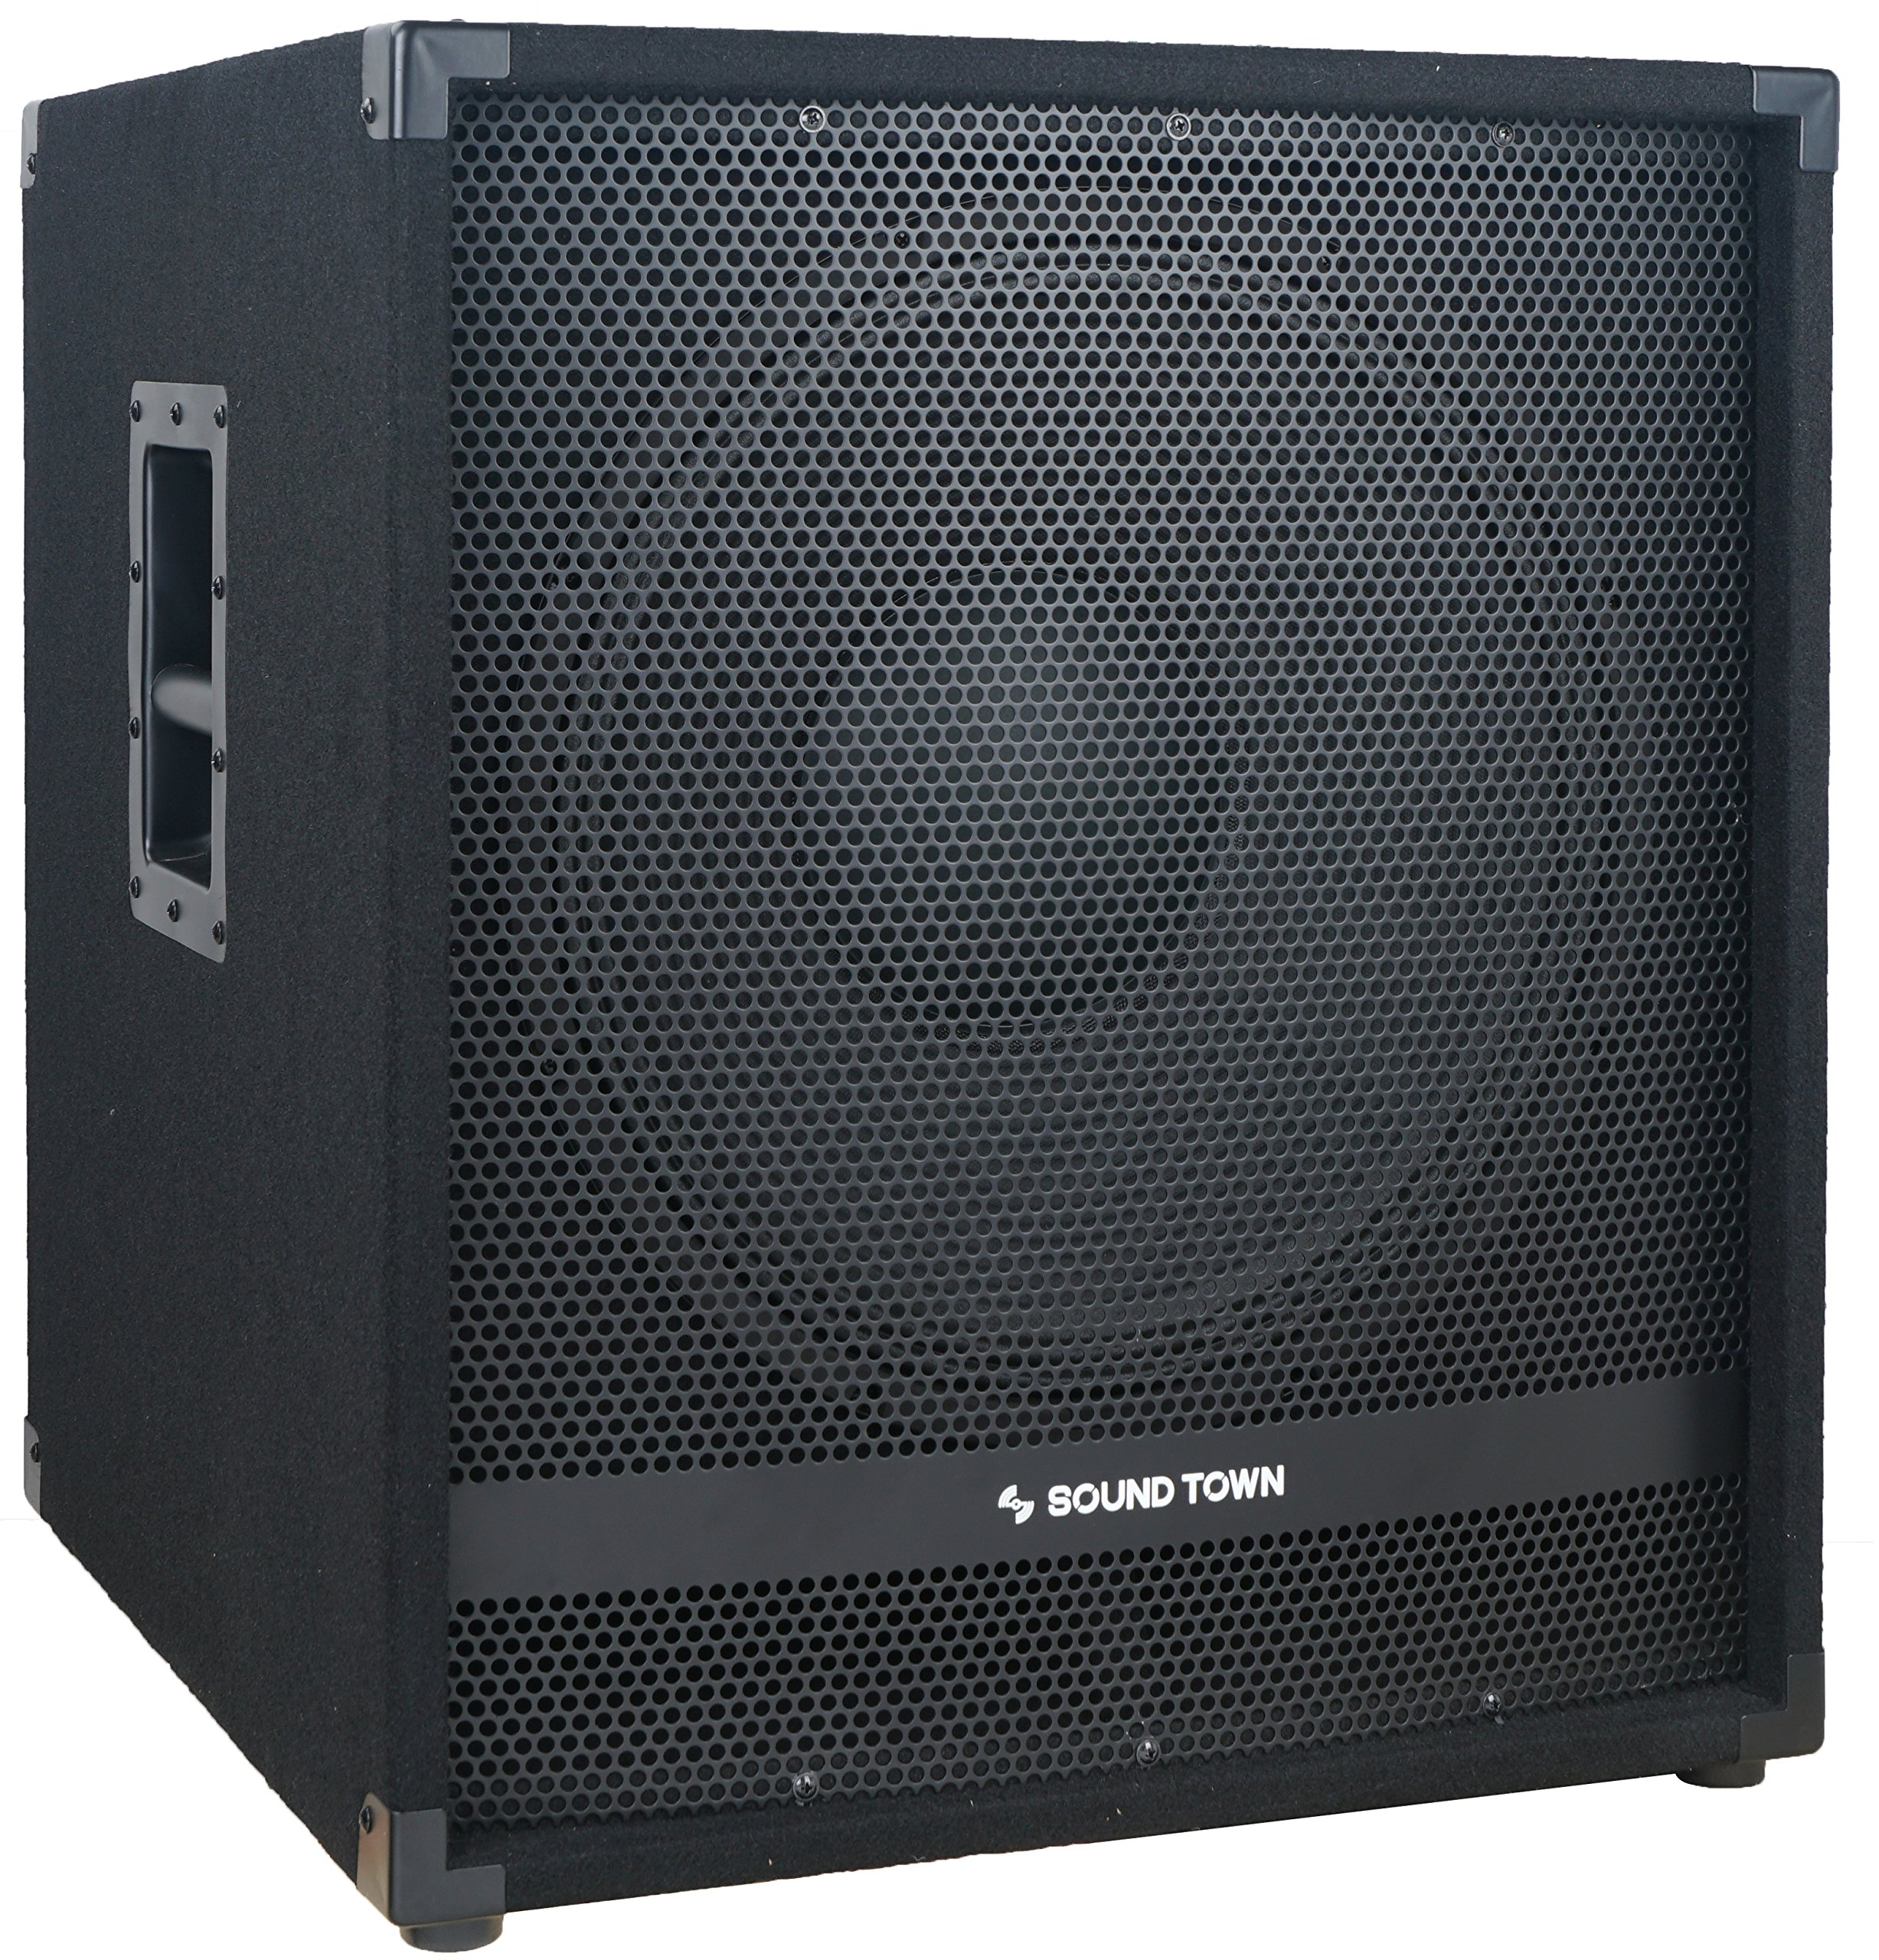 "Sound Town METIS Series 800W 15"" Powered Subwoofer with DSP (METIS-15SPW)"